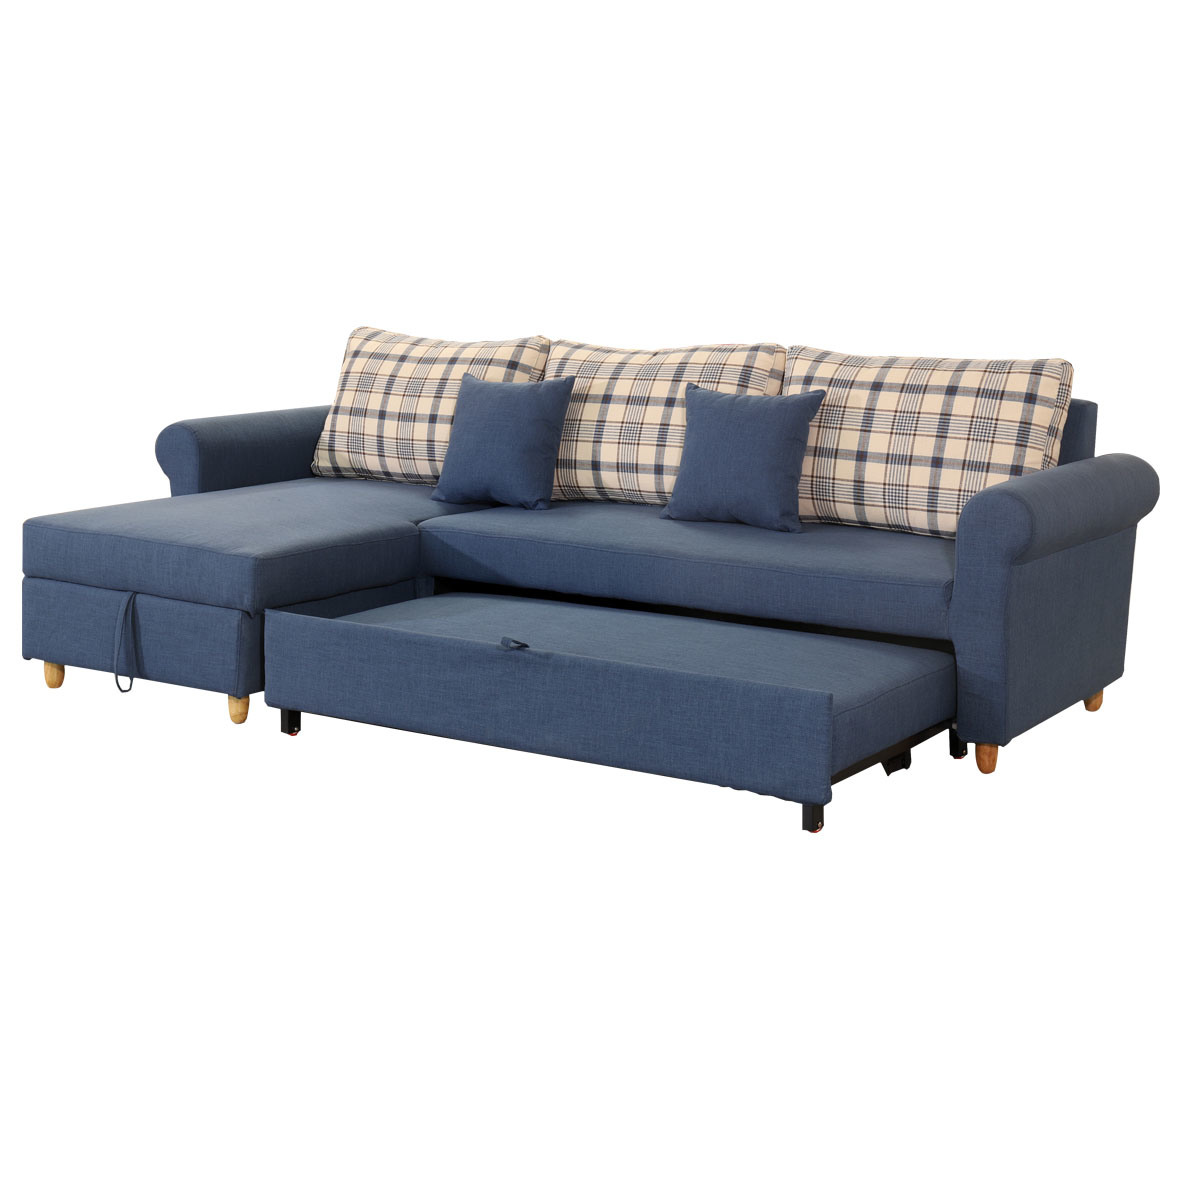 Phenomenal Lesso Home Folding Sofa Bed With Storage Box 3068 China Bralicious Painted Fabric Chair Ideas Braliciousco